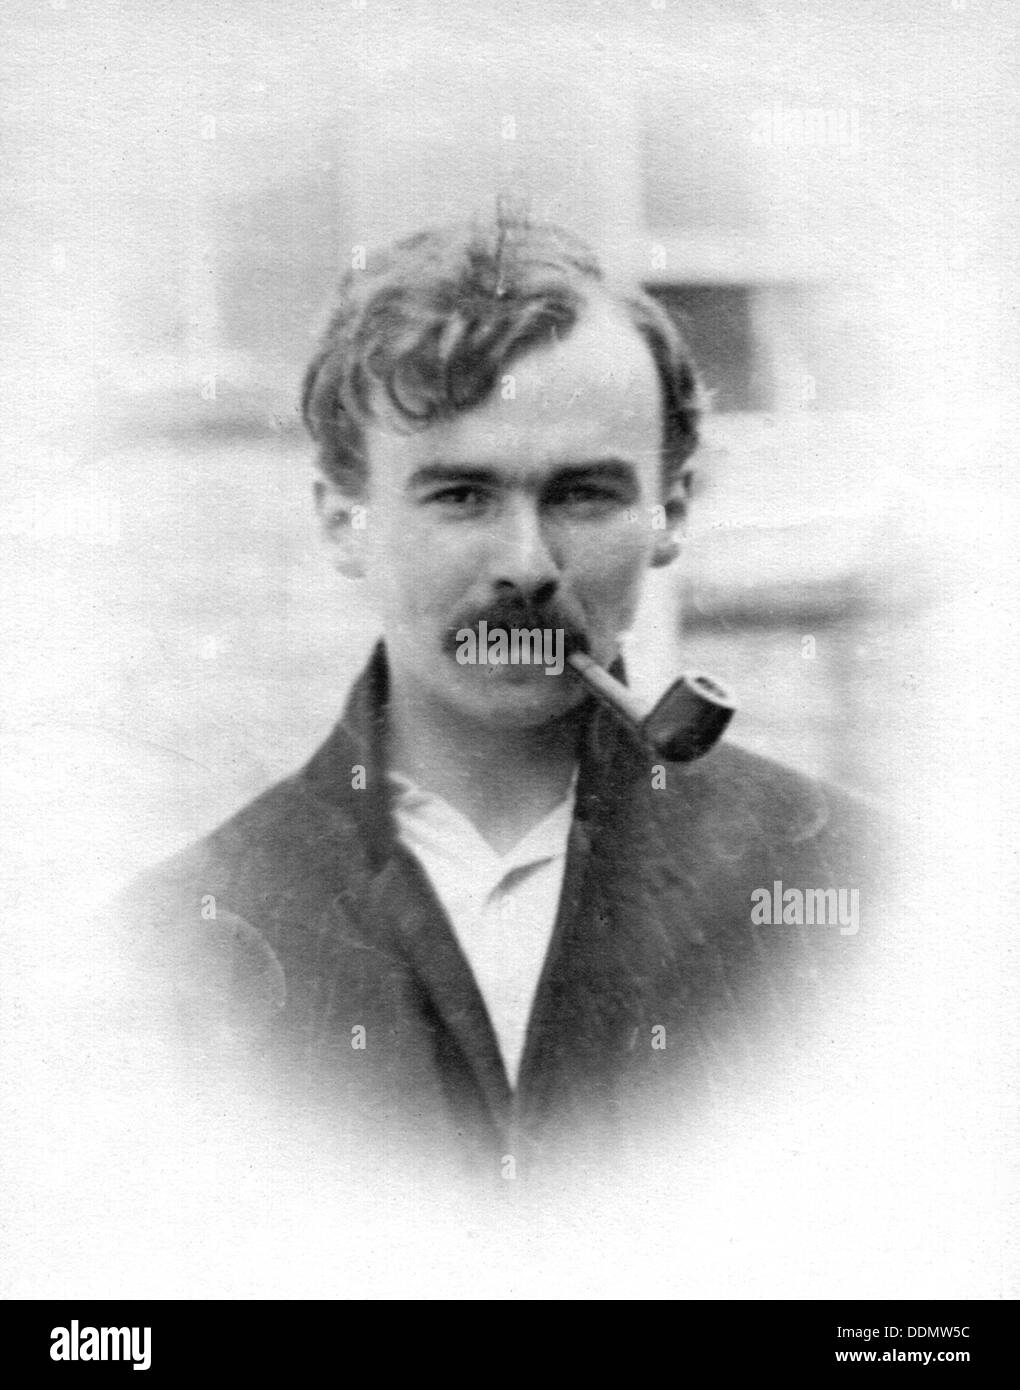 George Butterworth, British composer and folk music collector, c1910. - Stock Image